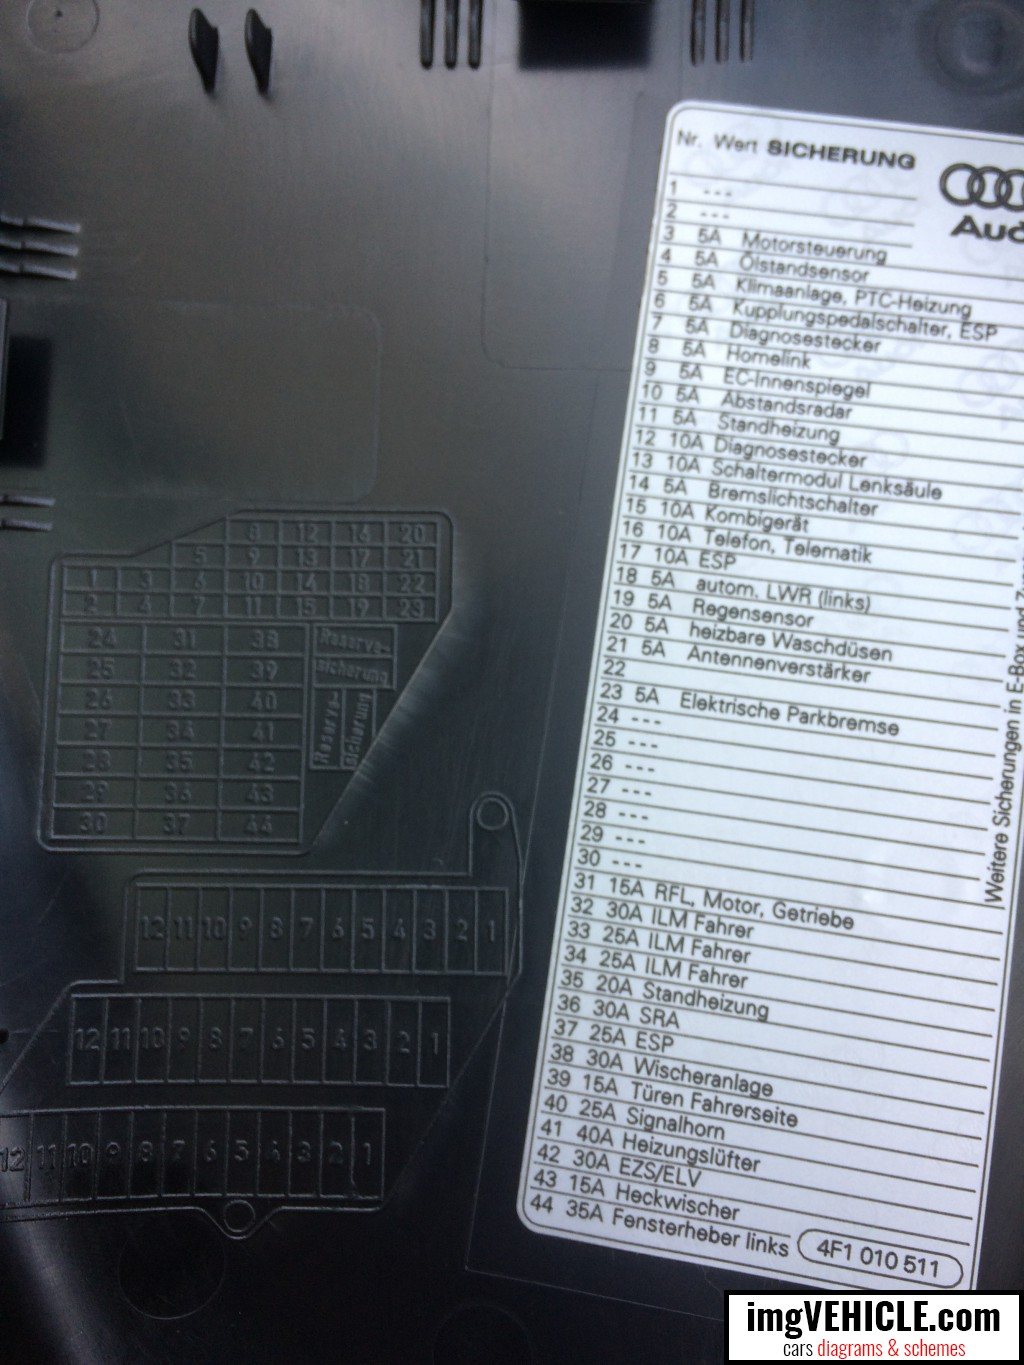 Fuse Box For 2005 Audi A6 - Wiring Diagram | Audi A6 Fuse Box In Boot |  | Wiring Diagram